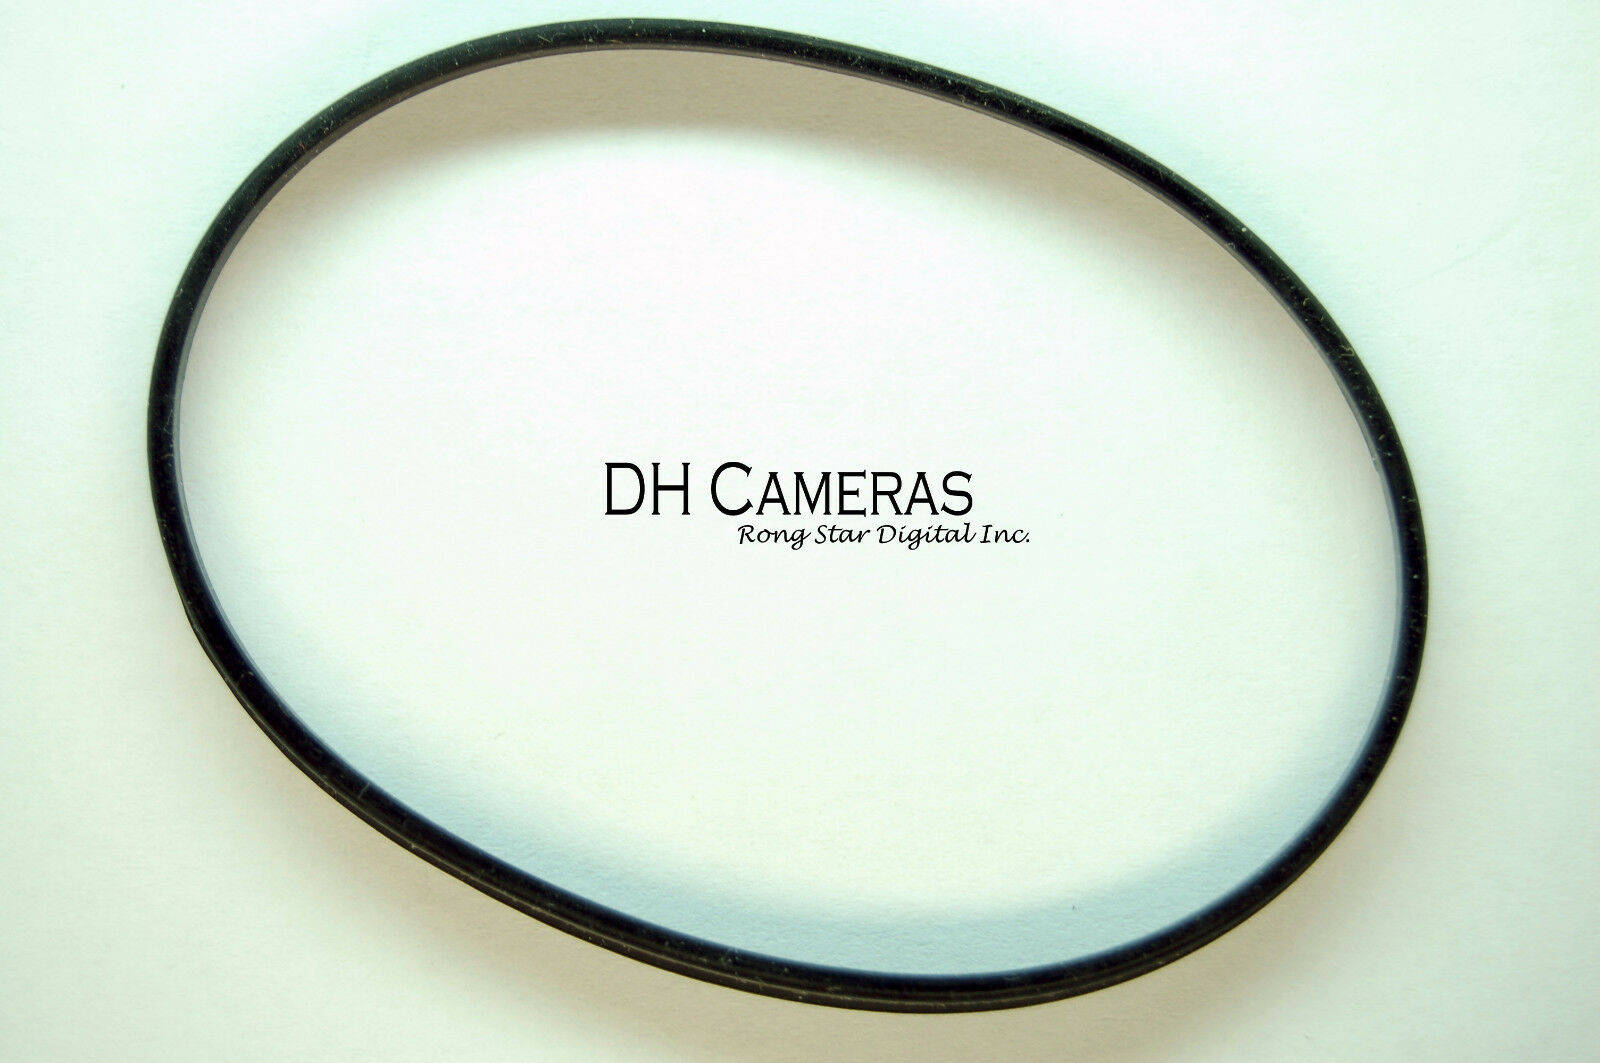 Canon rubber mount ring for Canon EF 70-200 mm 1:2.8L IS II USM YA2-3463-000